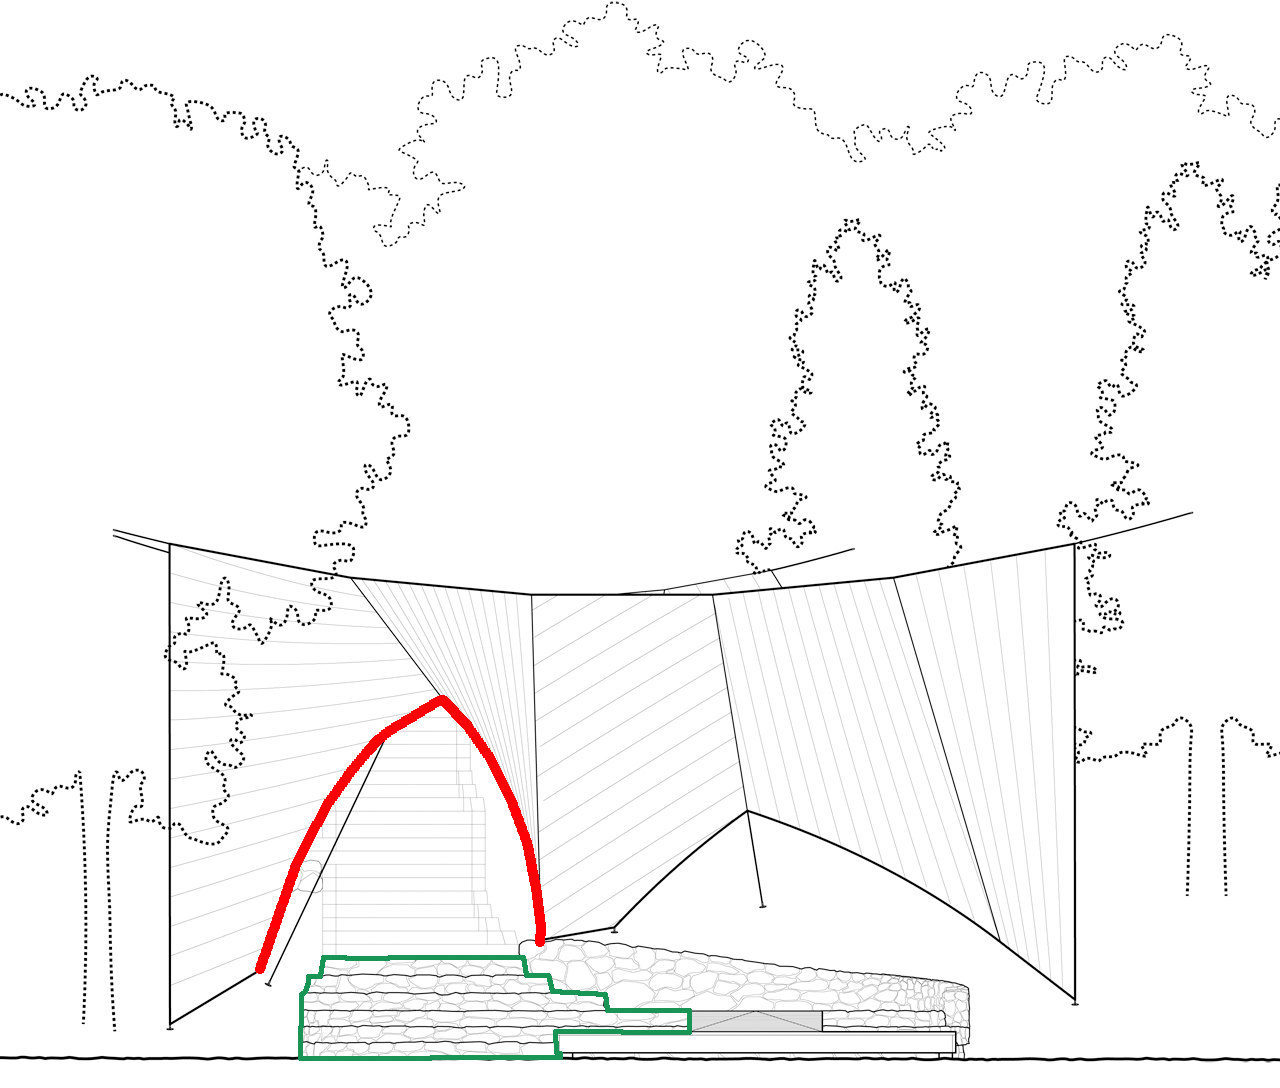 Image courtesy of Mark Talbot and Tyler Survant. Temporary Pavilion Elevation. Image fromhttp://www.archdaily.com.